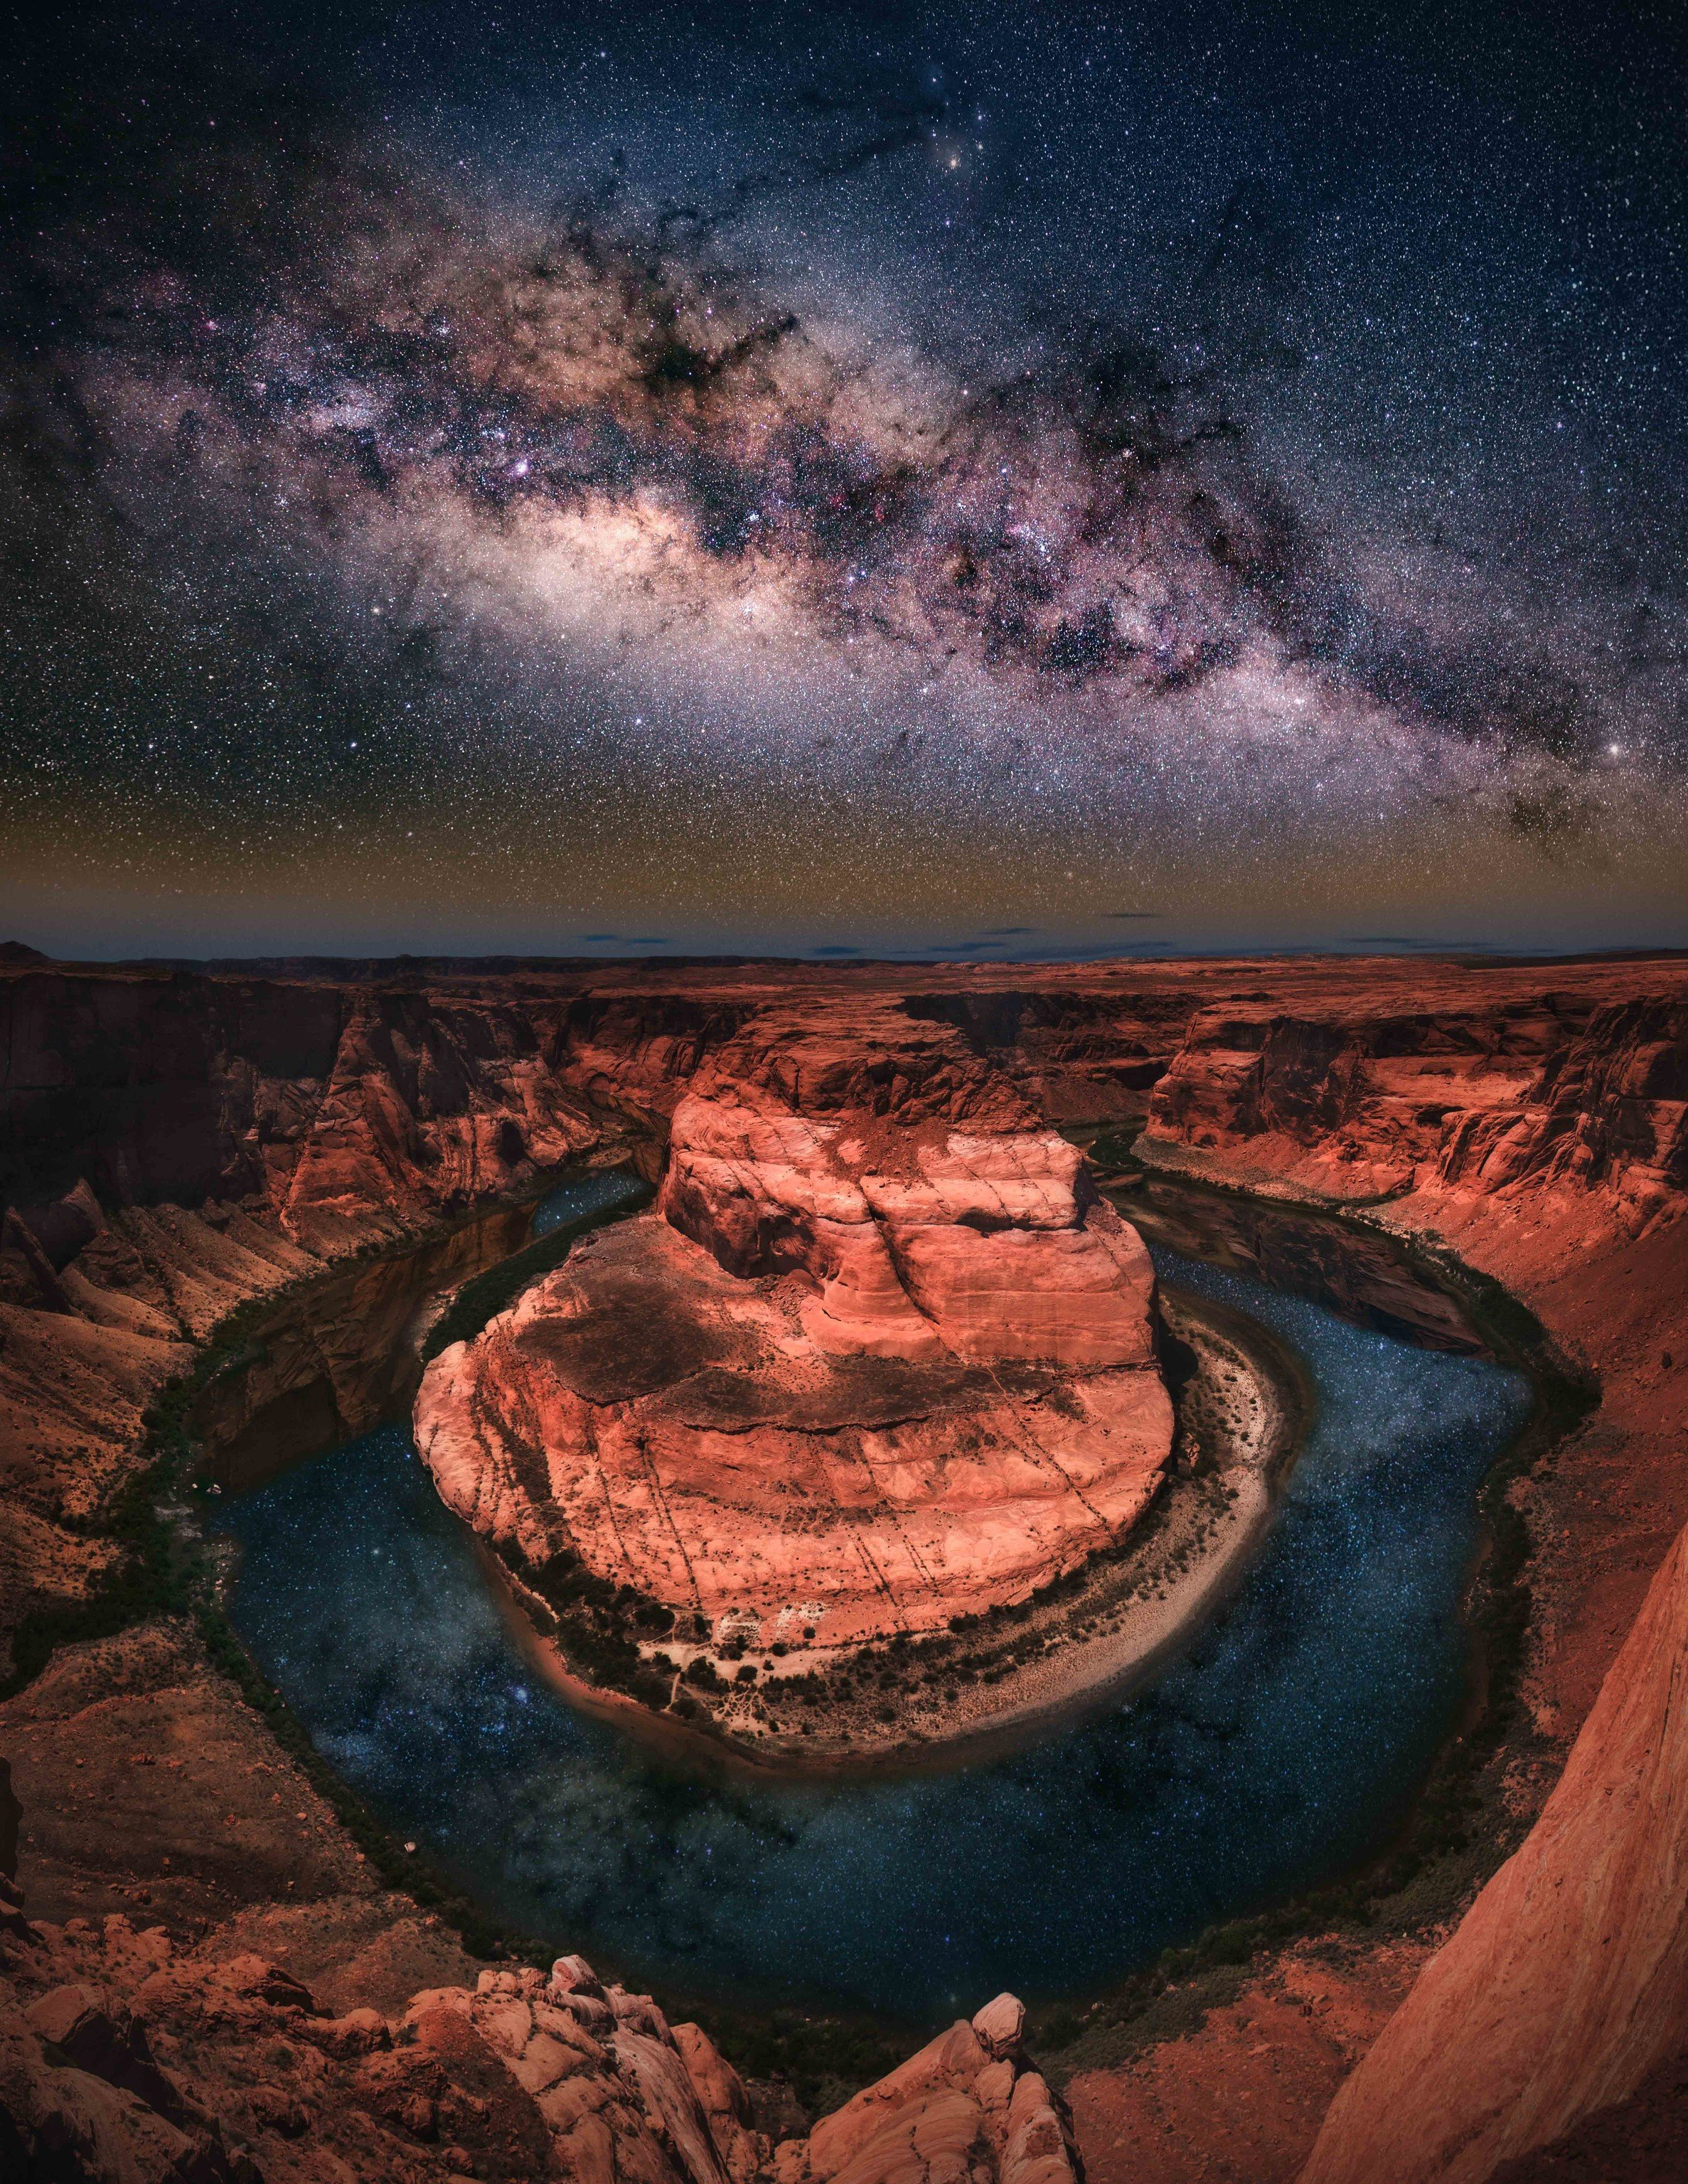 America American Southwest Road Trips Nature sky outdoor atmosphere outer space phenomenon geological phenomenon universe galaxy earth astronomical object star space reflection water landscape night computer wallpaper stock photography milky way